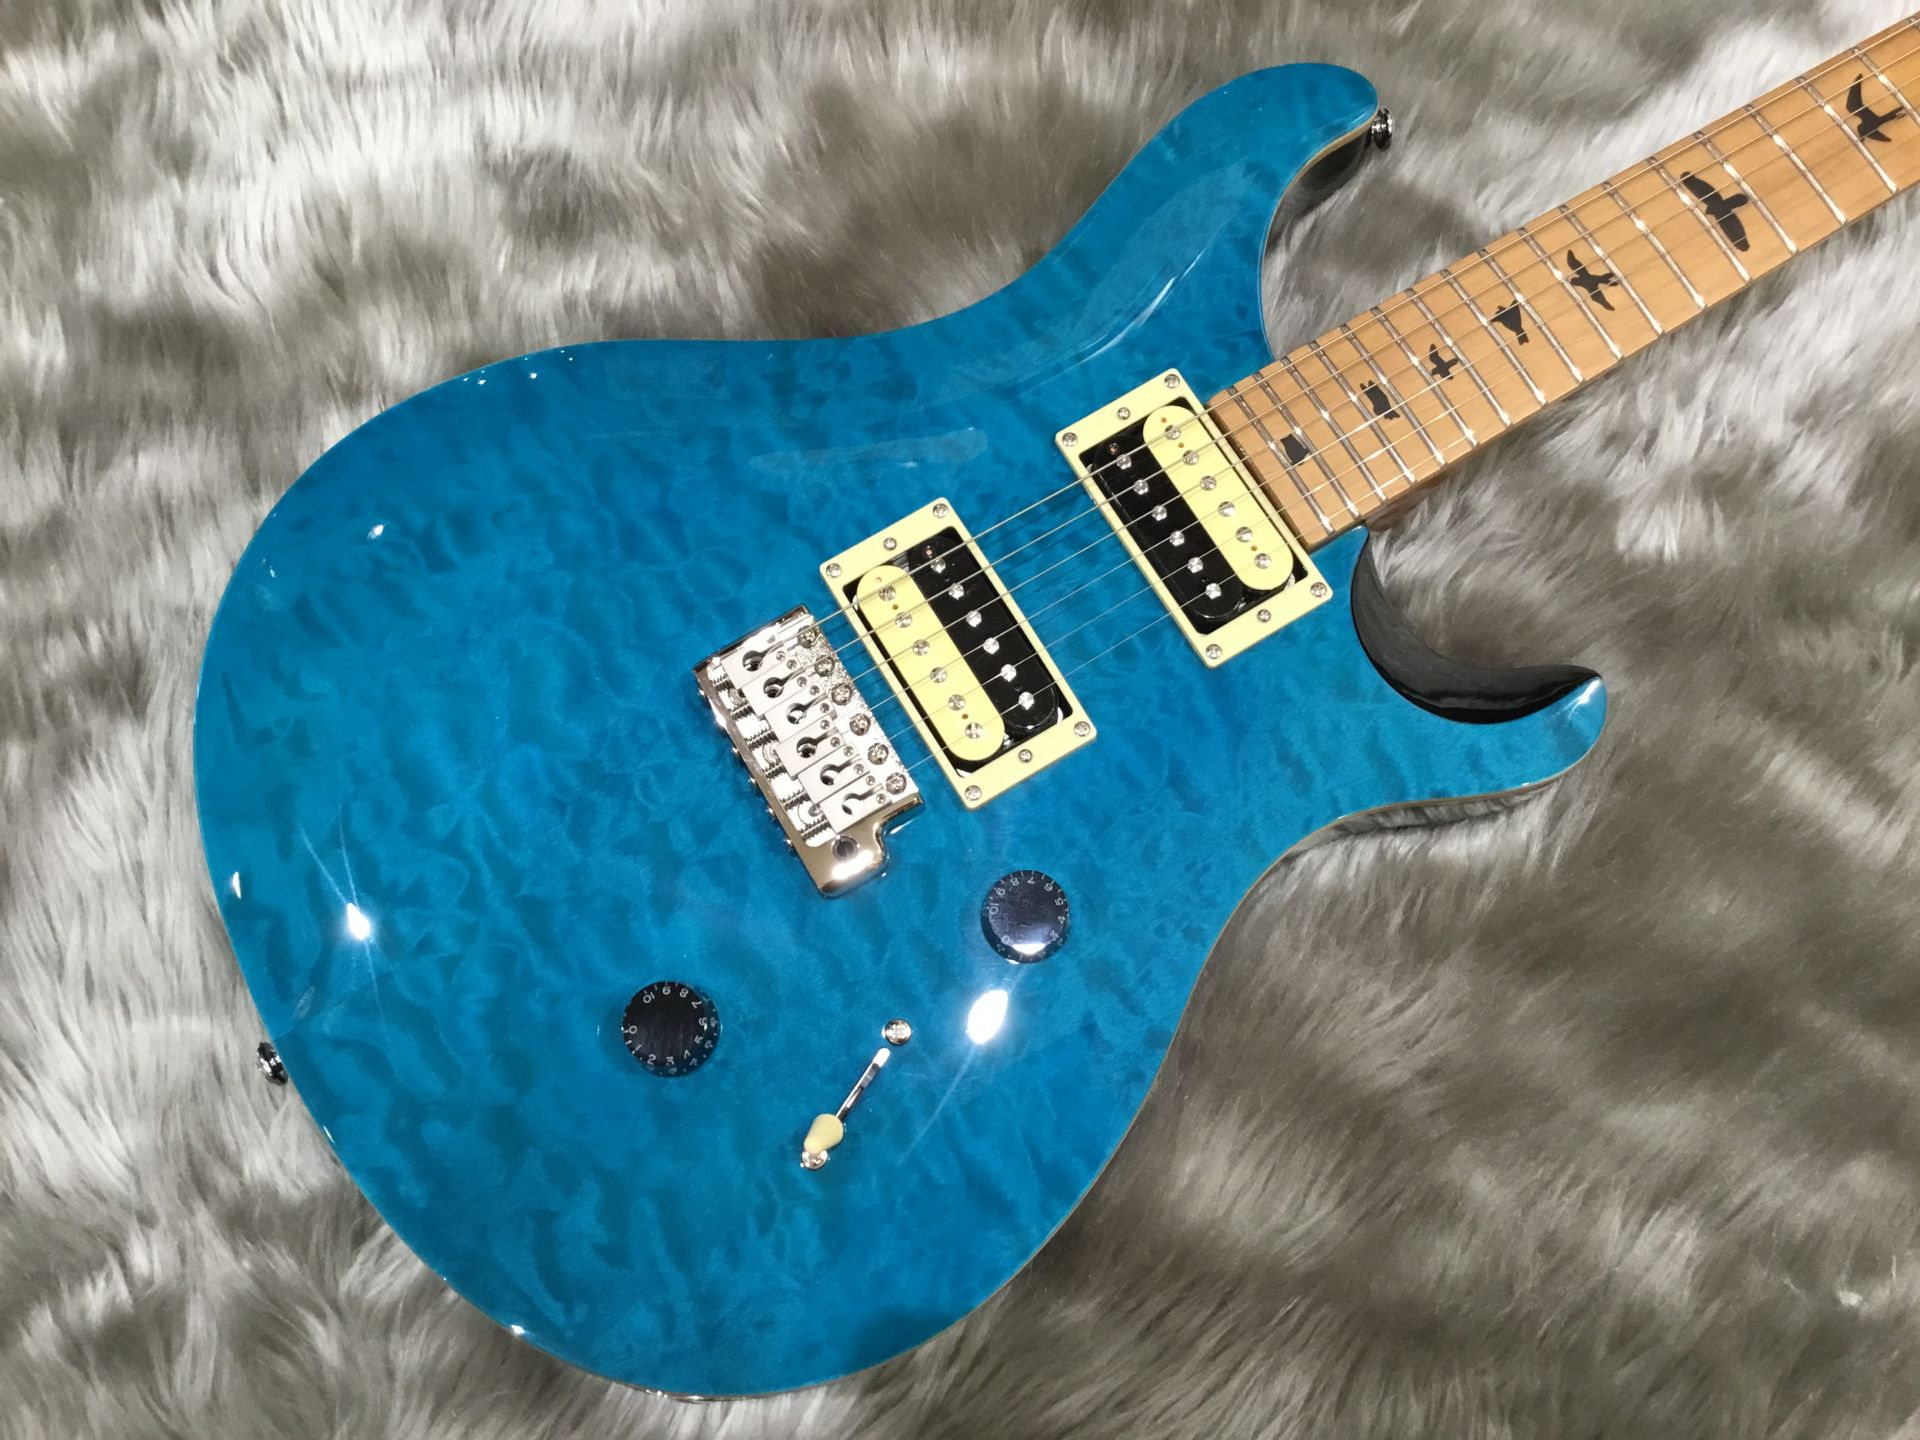 SE Custom 24 Roasted Maple Limited Sapphiree/Natural Backのボディトップ-アップ画像